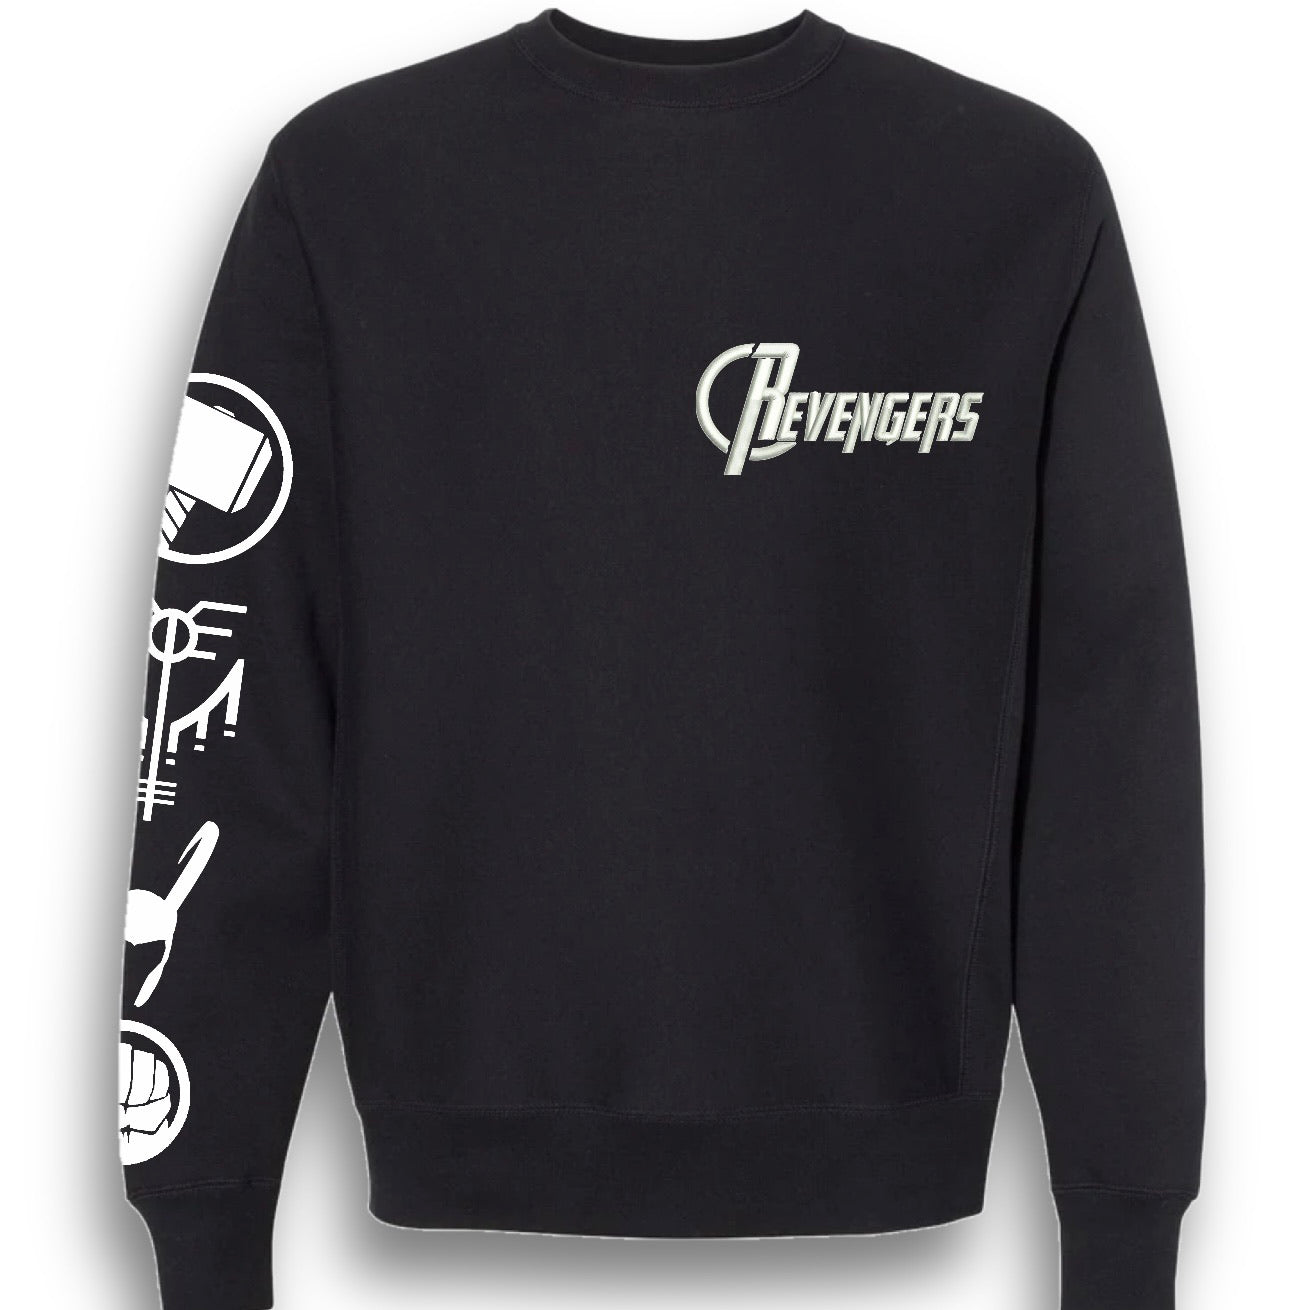 Revengers embroidered pullover Sweatshirt